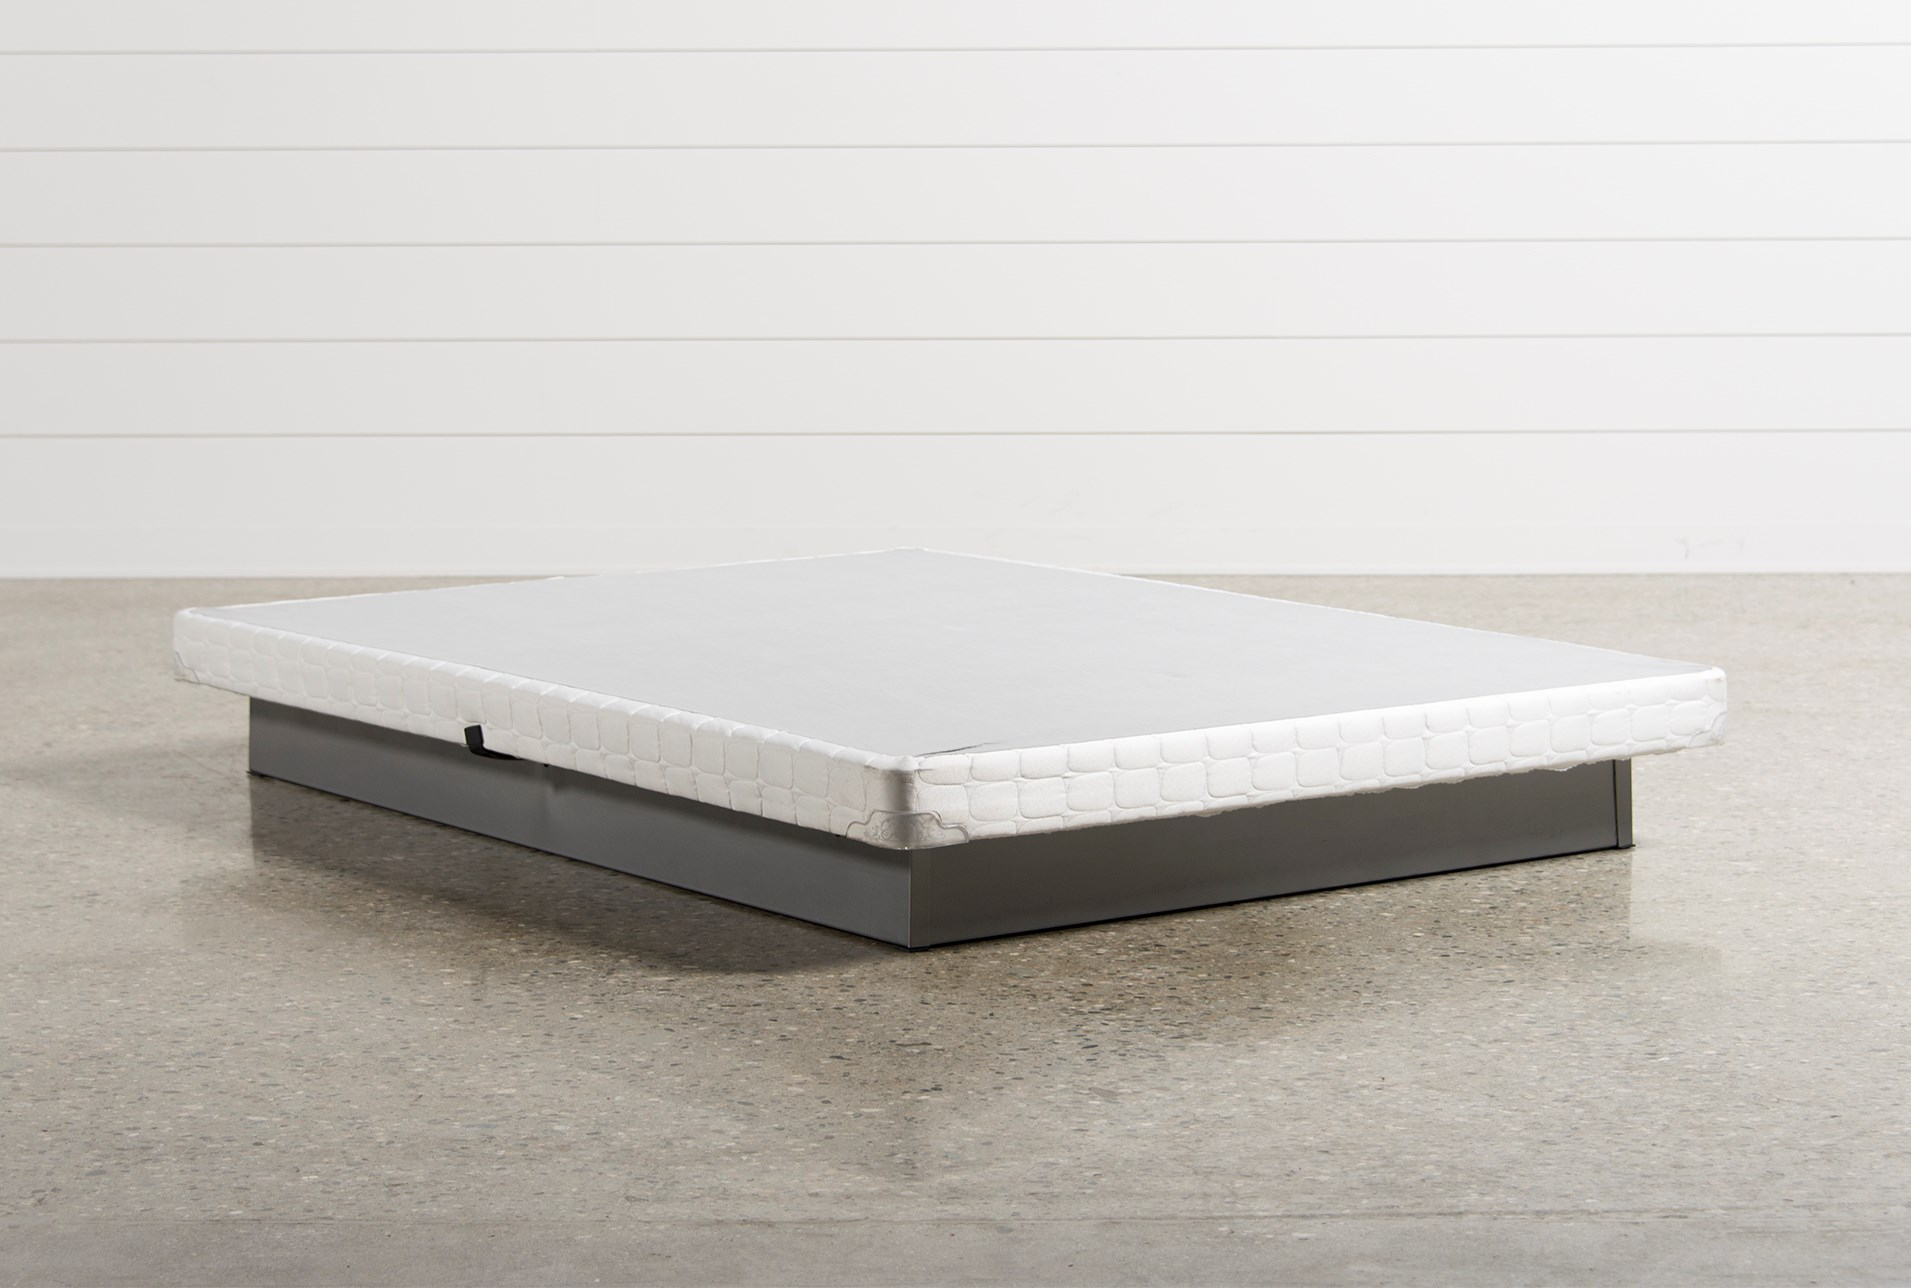 makers mattress reviews watch texas youtube about